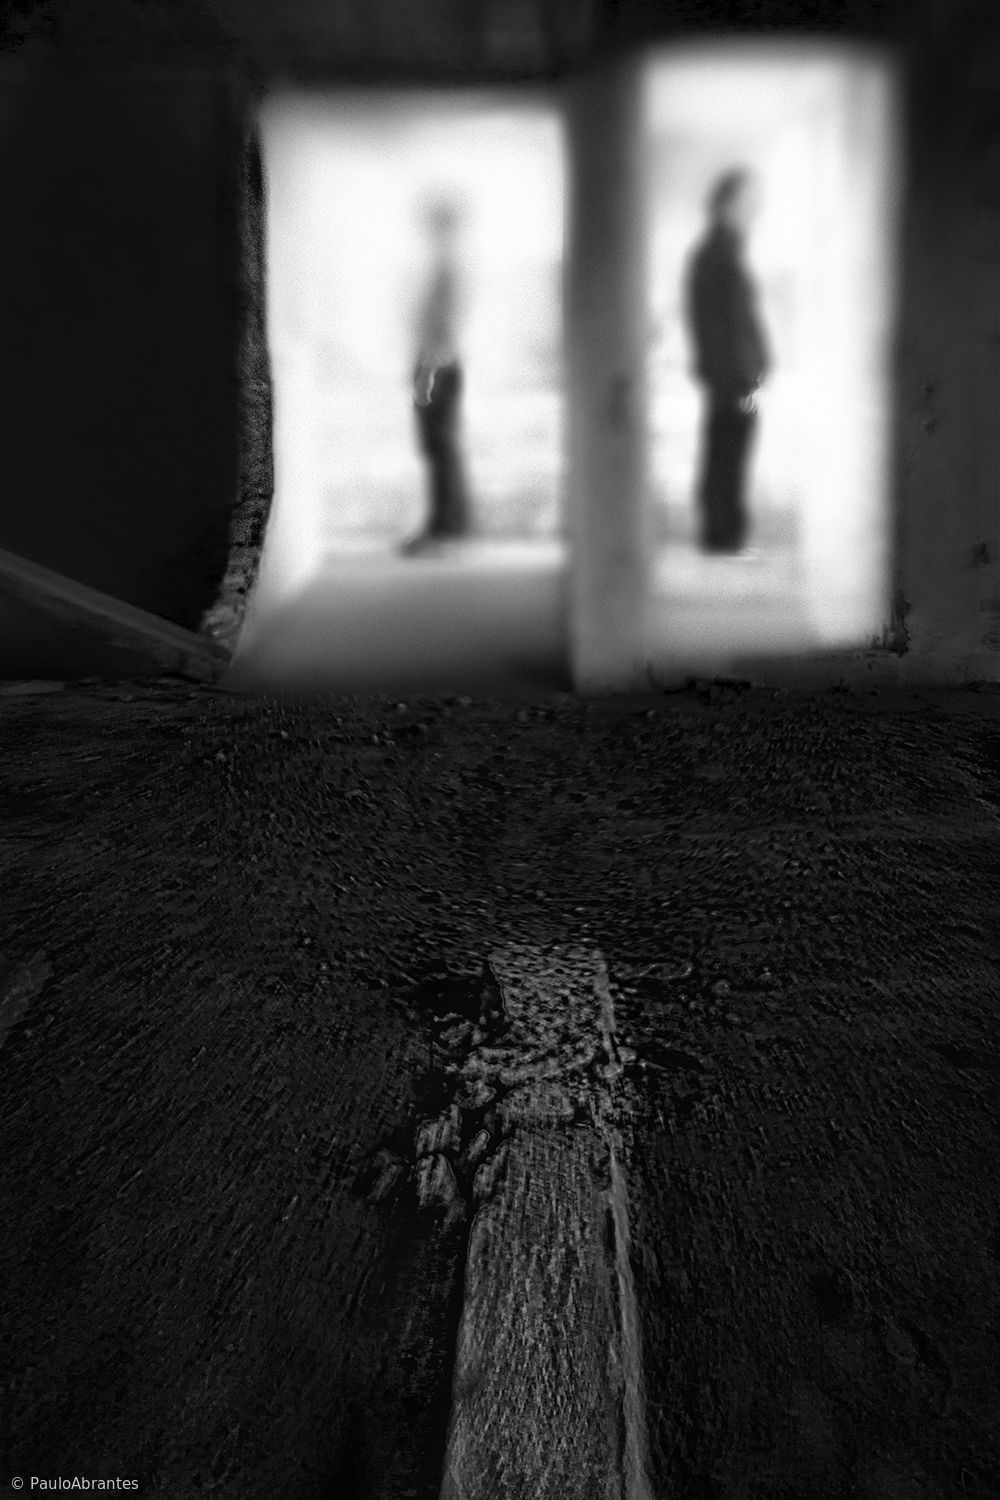 Disintegration Anxiety by Paulo Abrantes